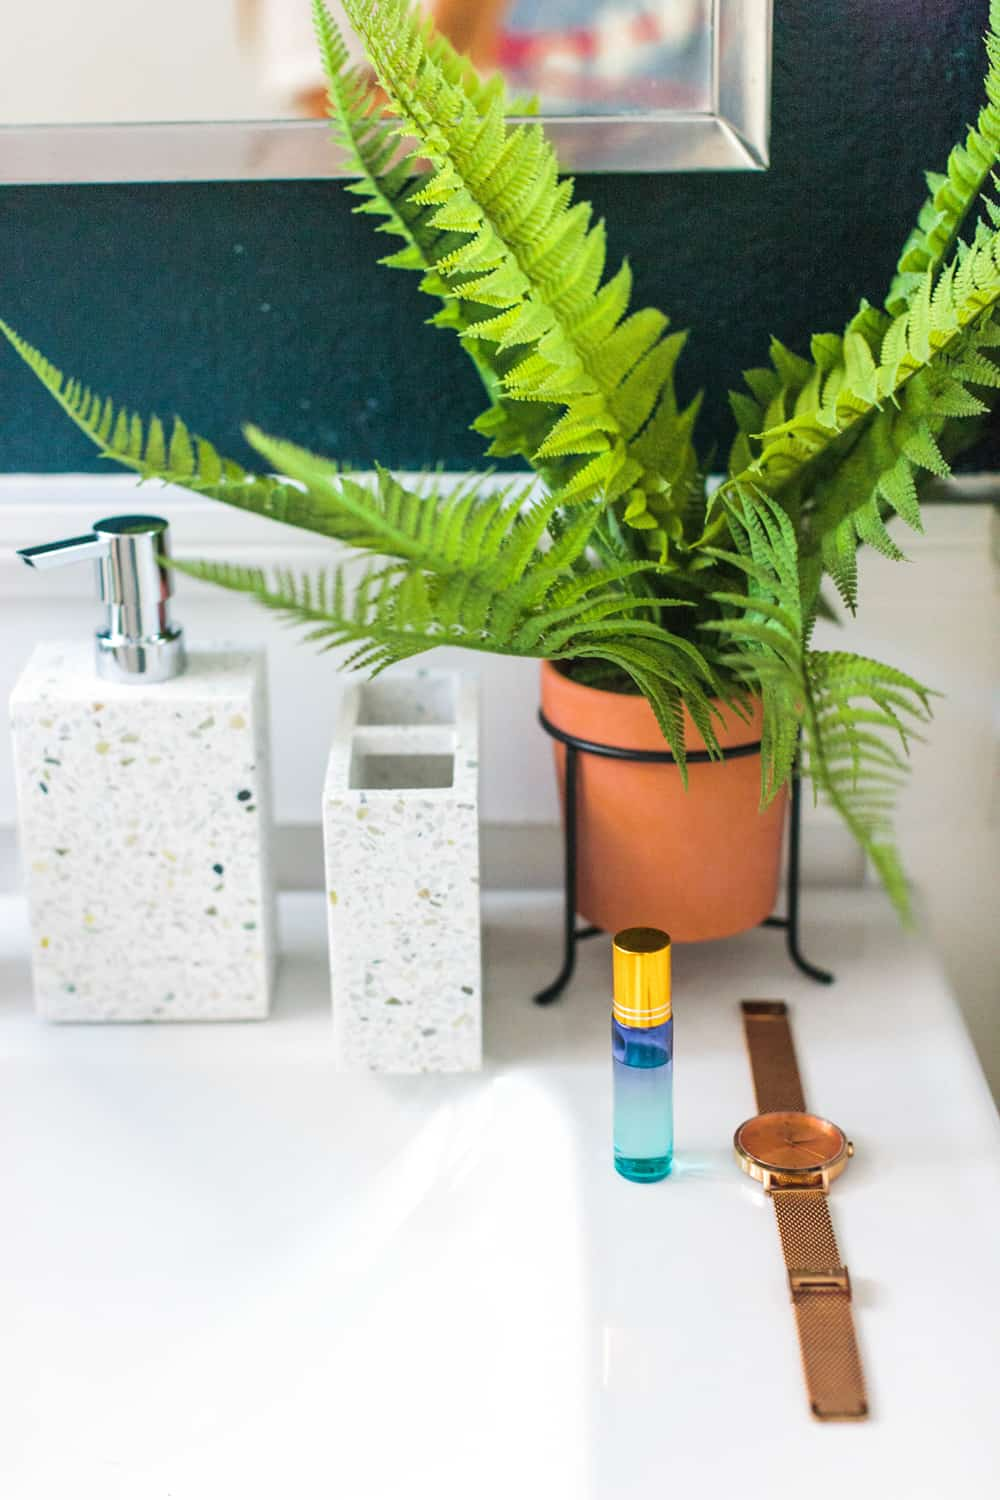 plant, roller bottle, soap dispenser and toothbrush holder next to sink